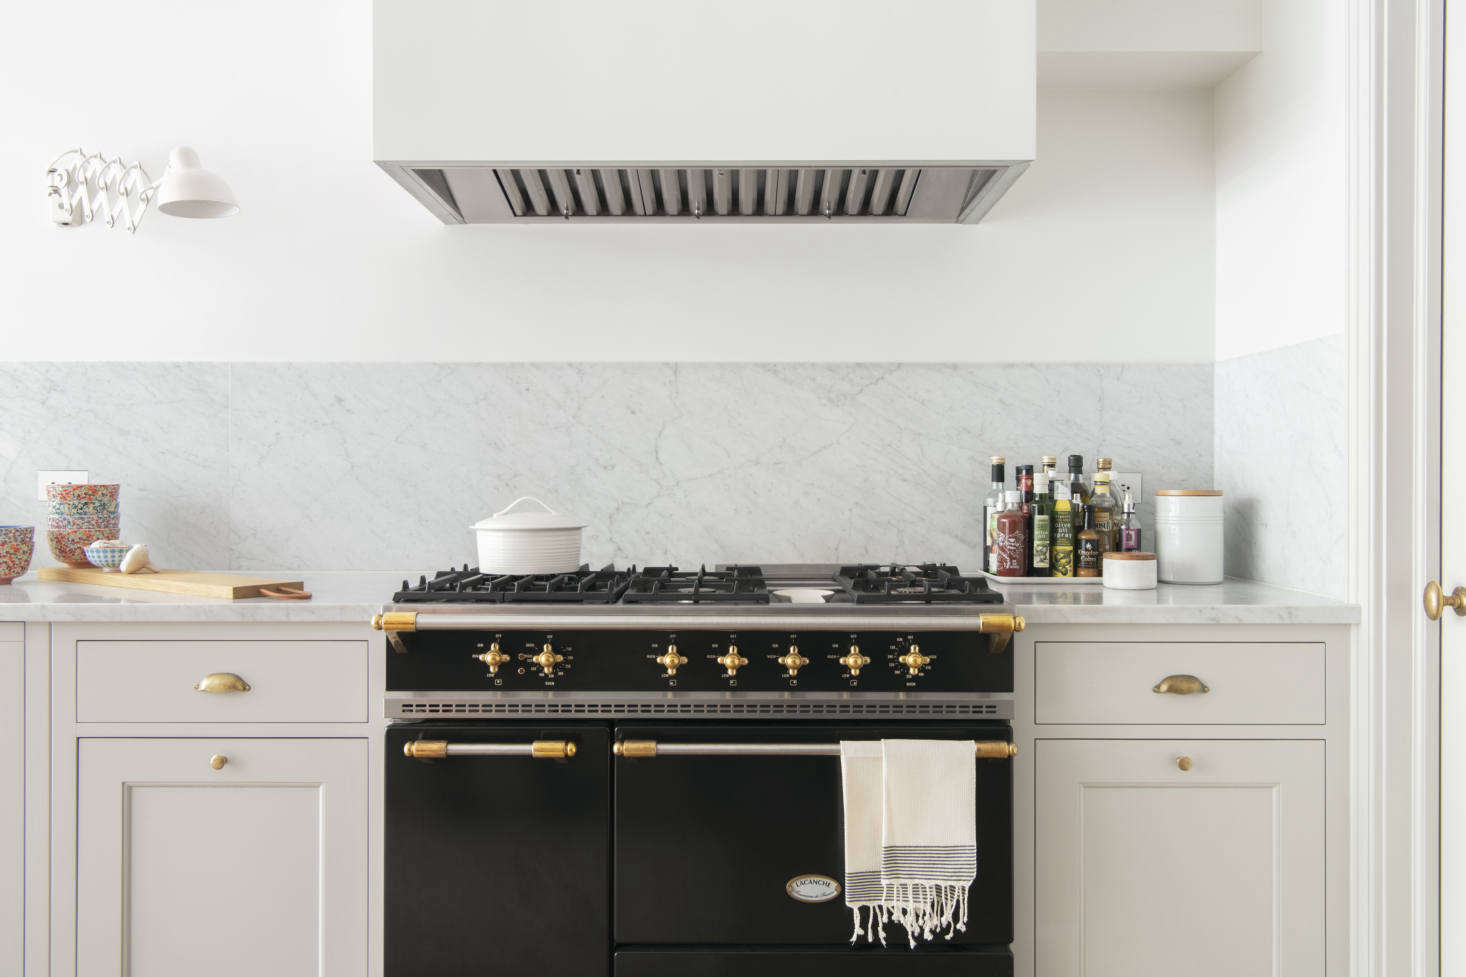 The range is La Canche's Saulieu Classique in matte black. The pull-out cabinets on either side of it hold pots and pans.